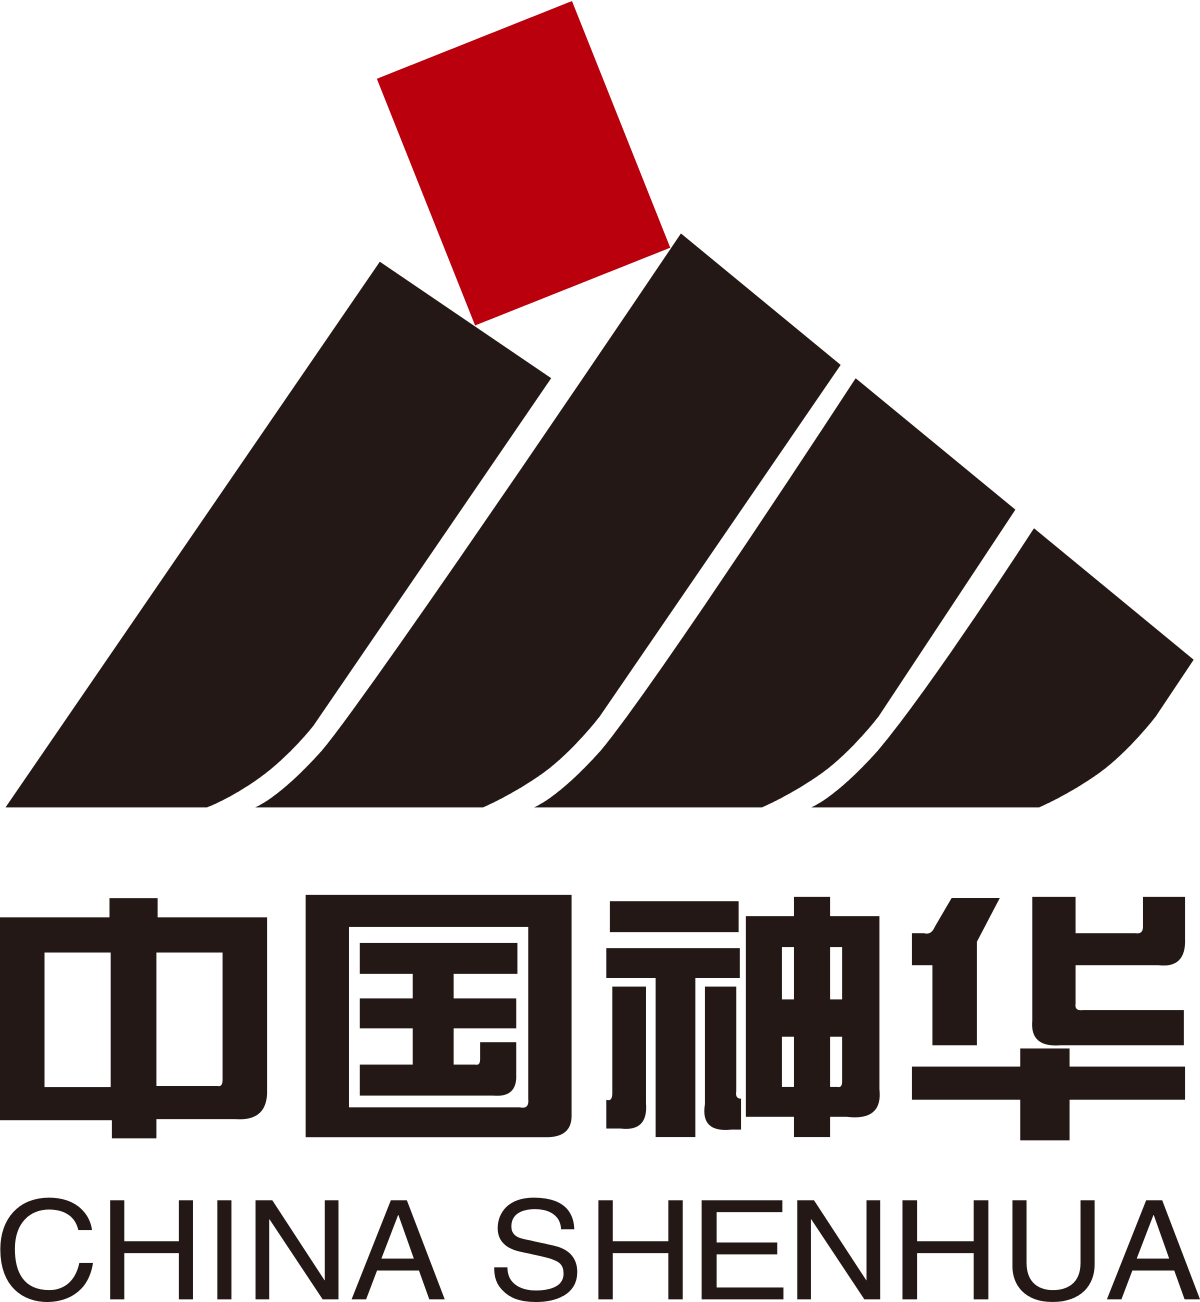 China Shenhua 1088 Icon Logo